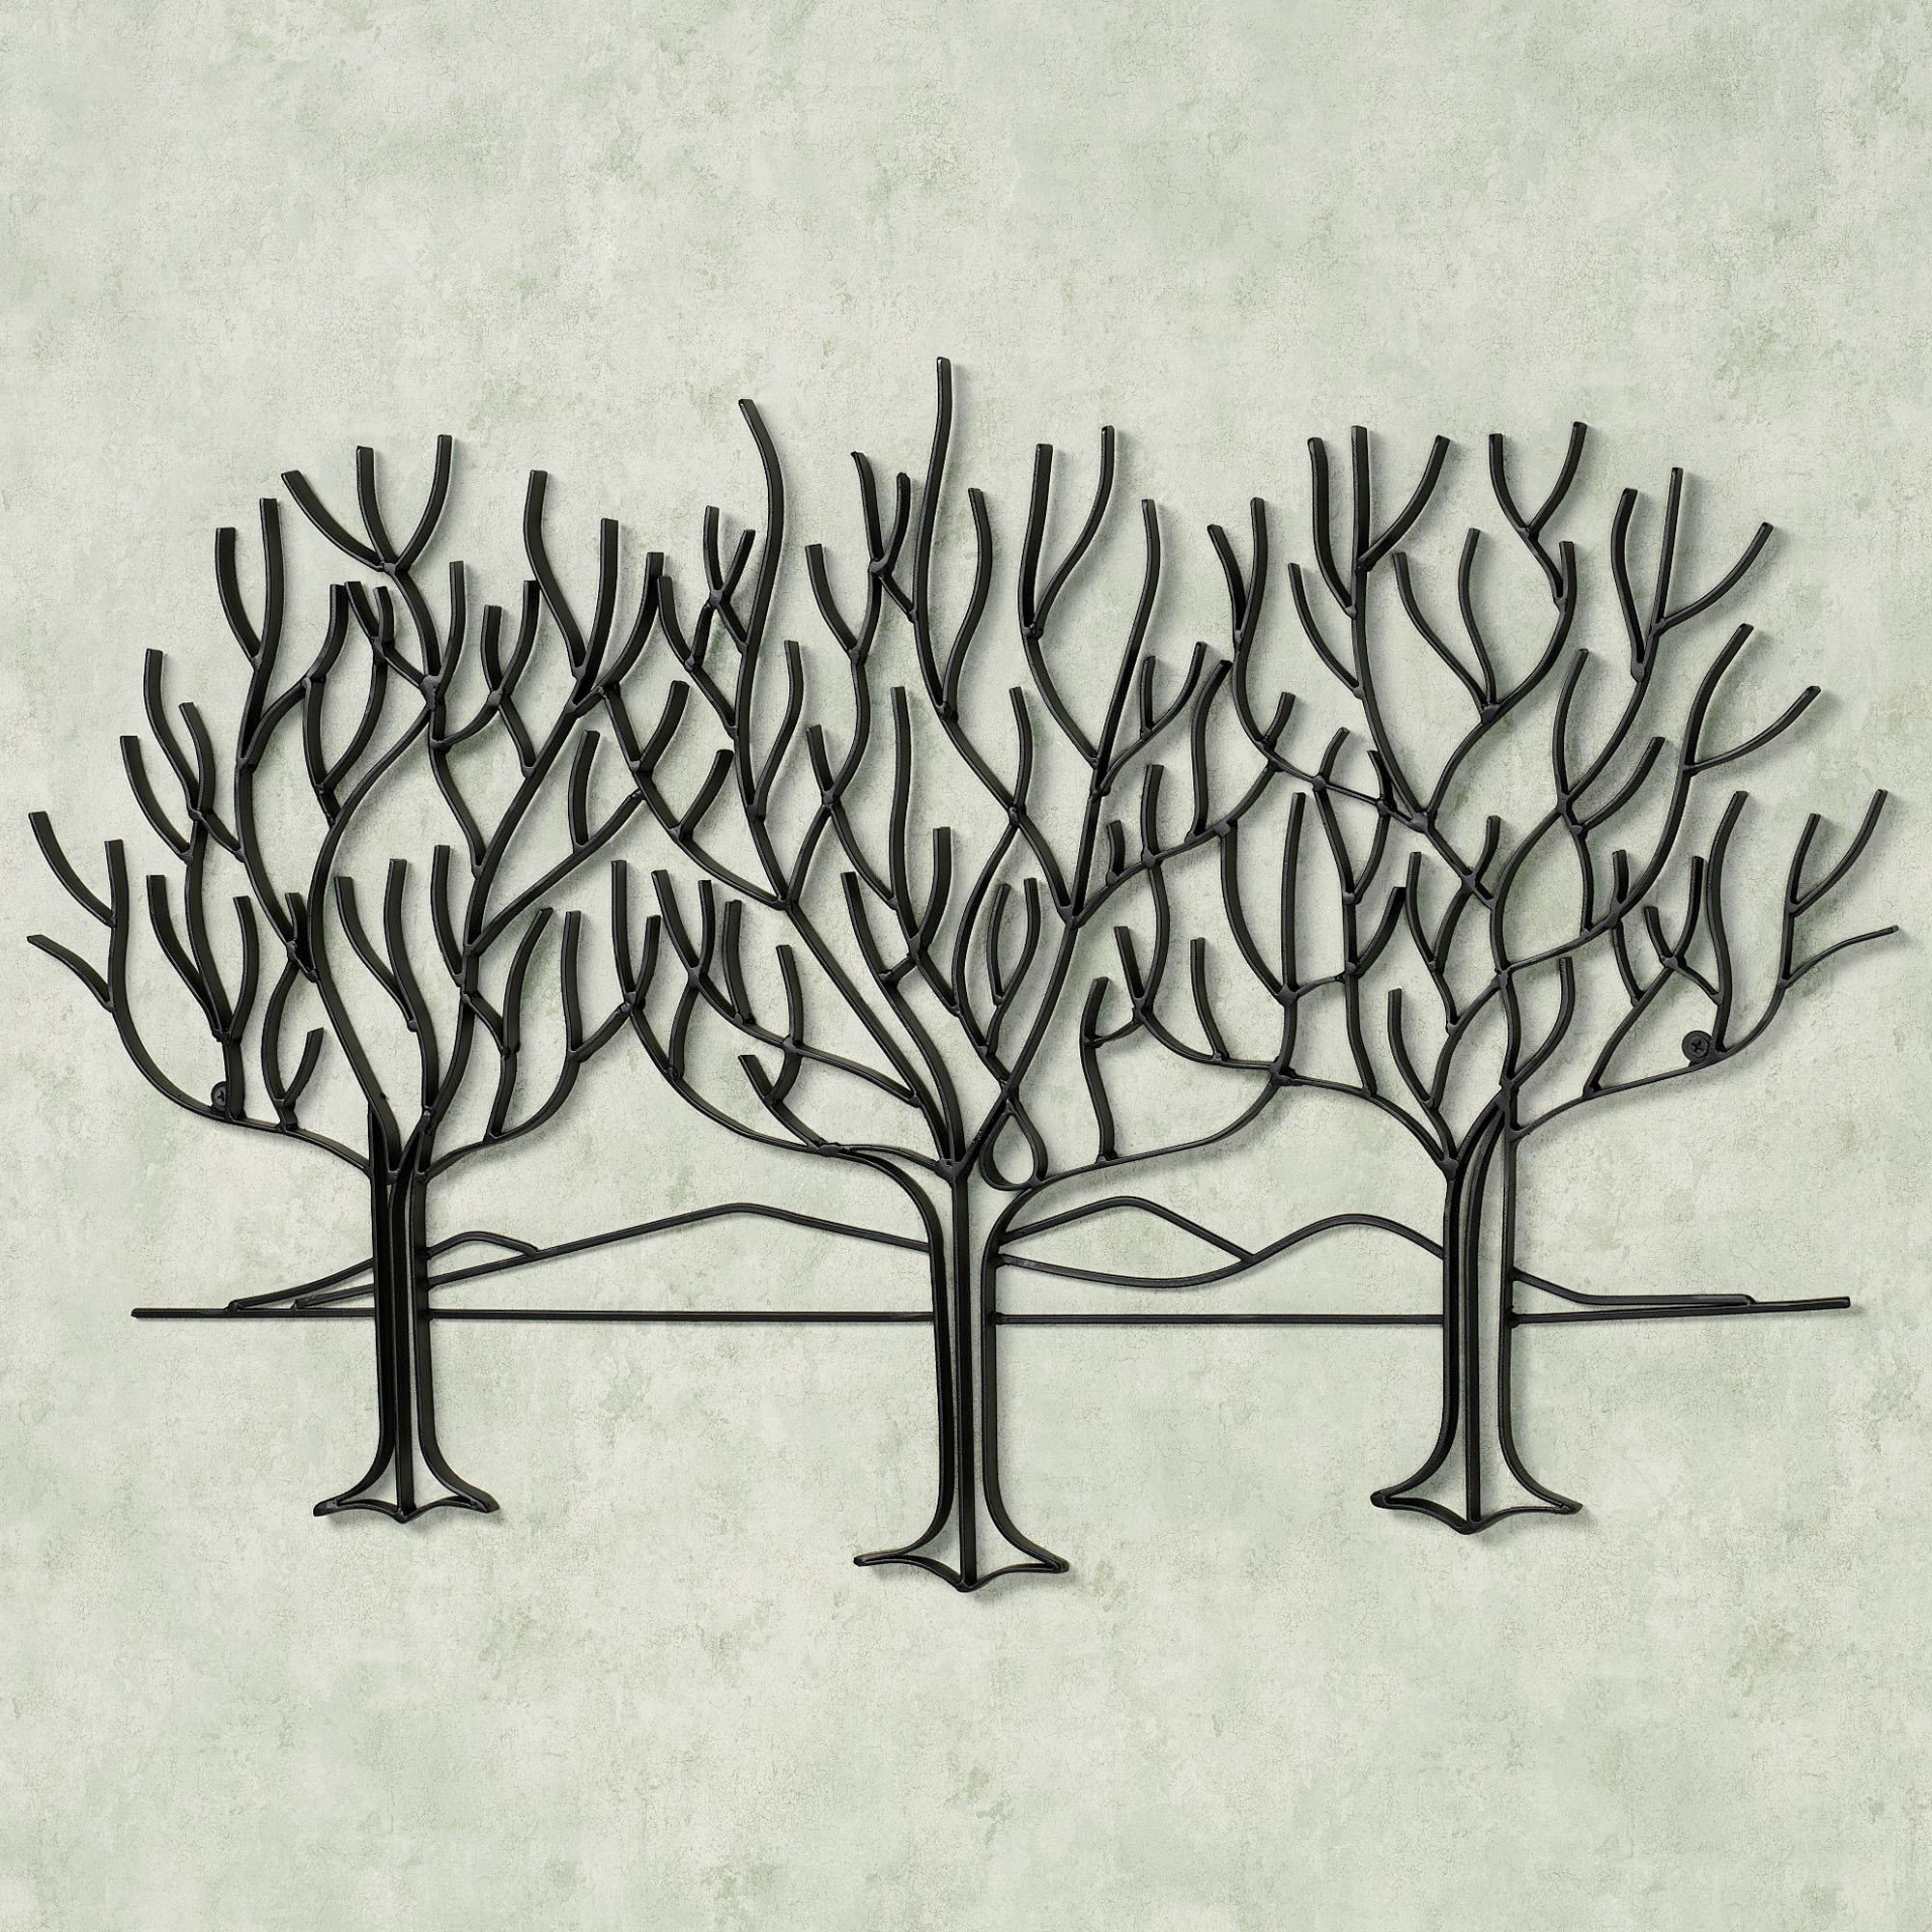 Wall Art Designs Metal Trees Black Olive Abstract Design Pertaining To Olive/gray Metal Wall Decor (View 6 of 30)